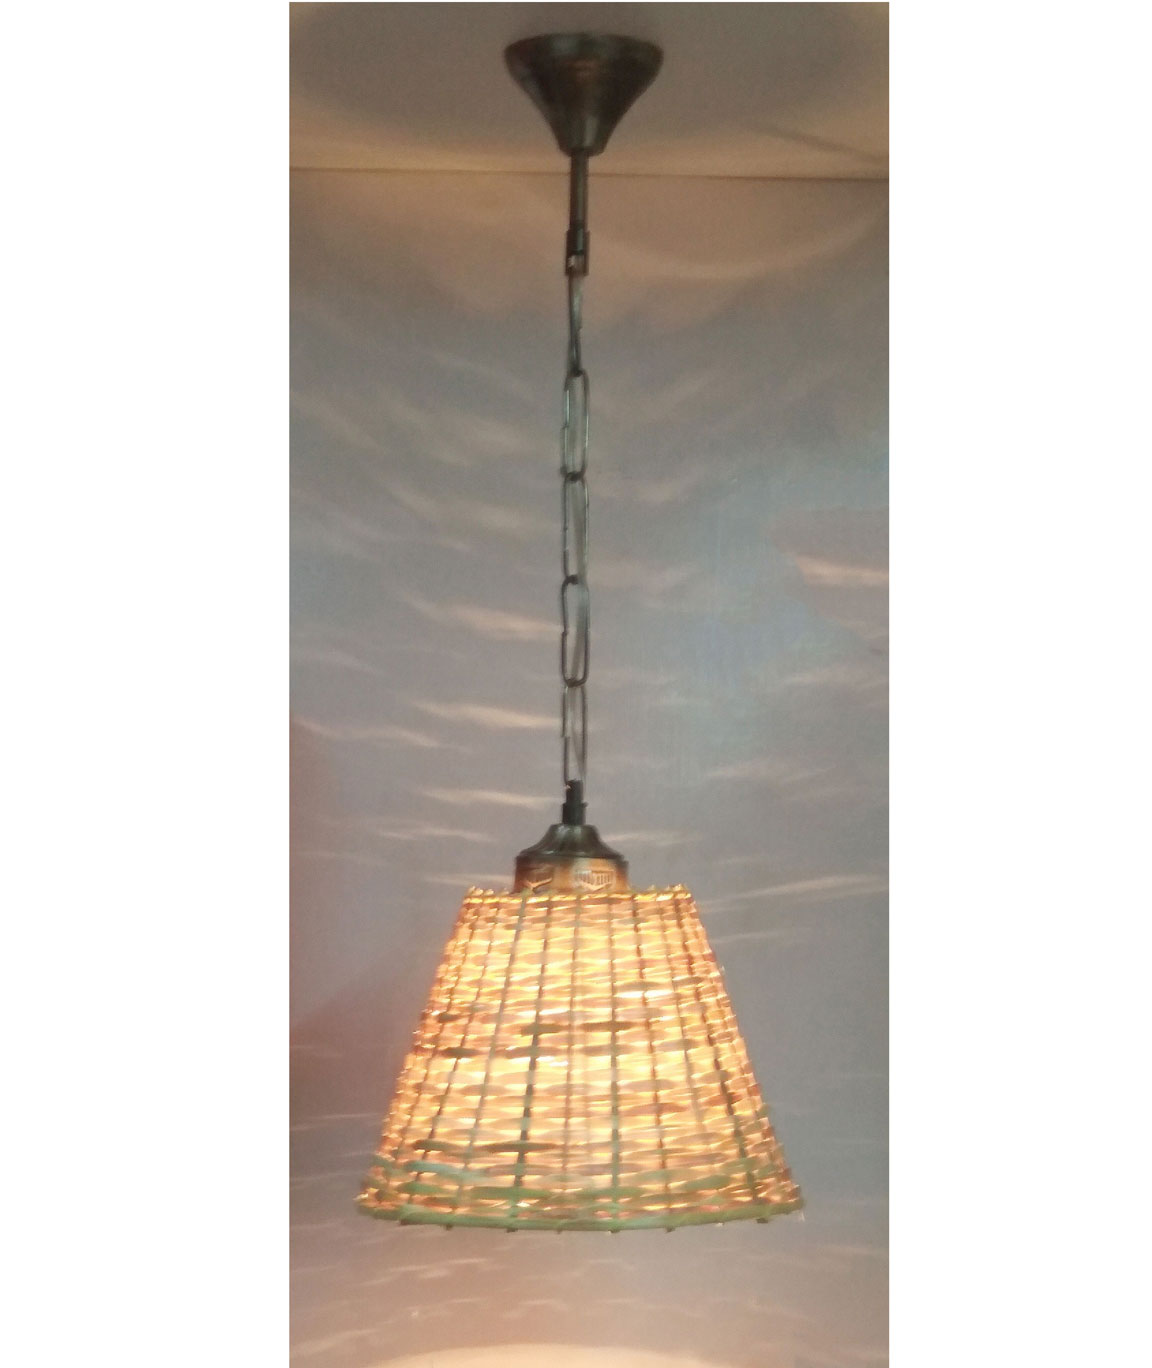 RDC 8 Inches Round Cane Ceiling Hanging Pendant Lamp Shade with Wired Metal Chain